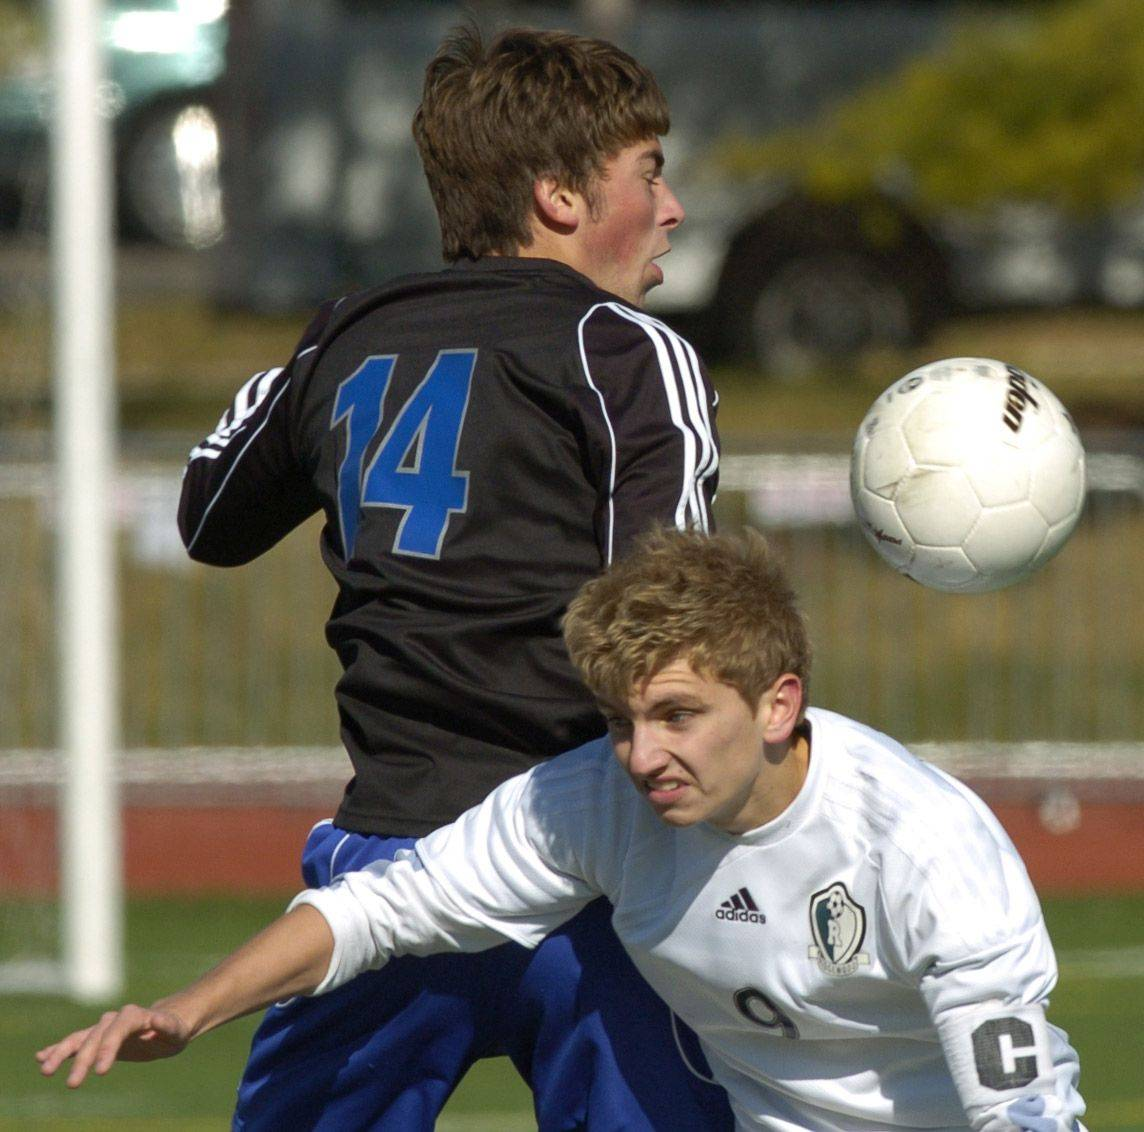 Burlington Central's Brandon Cesaroni, left, and Ridgewood's Peter Soja try to control the ball.